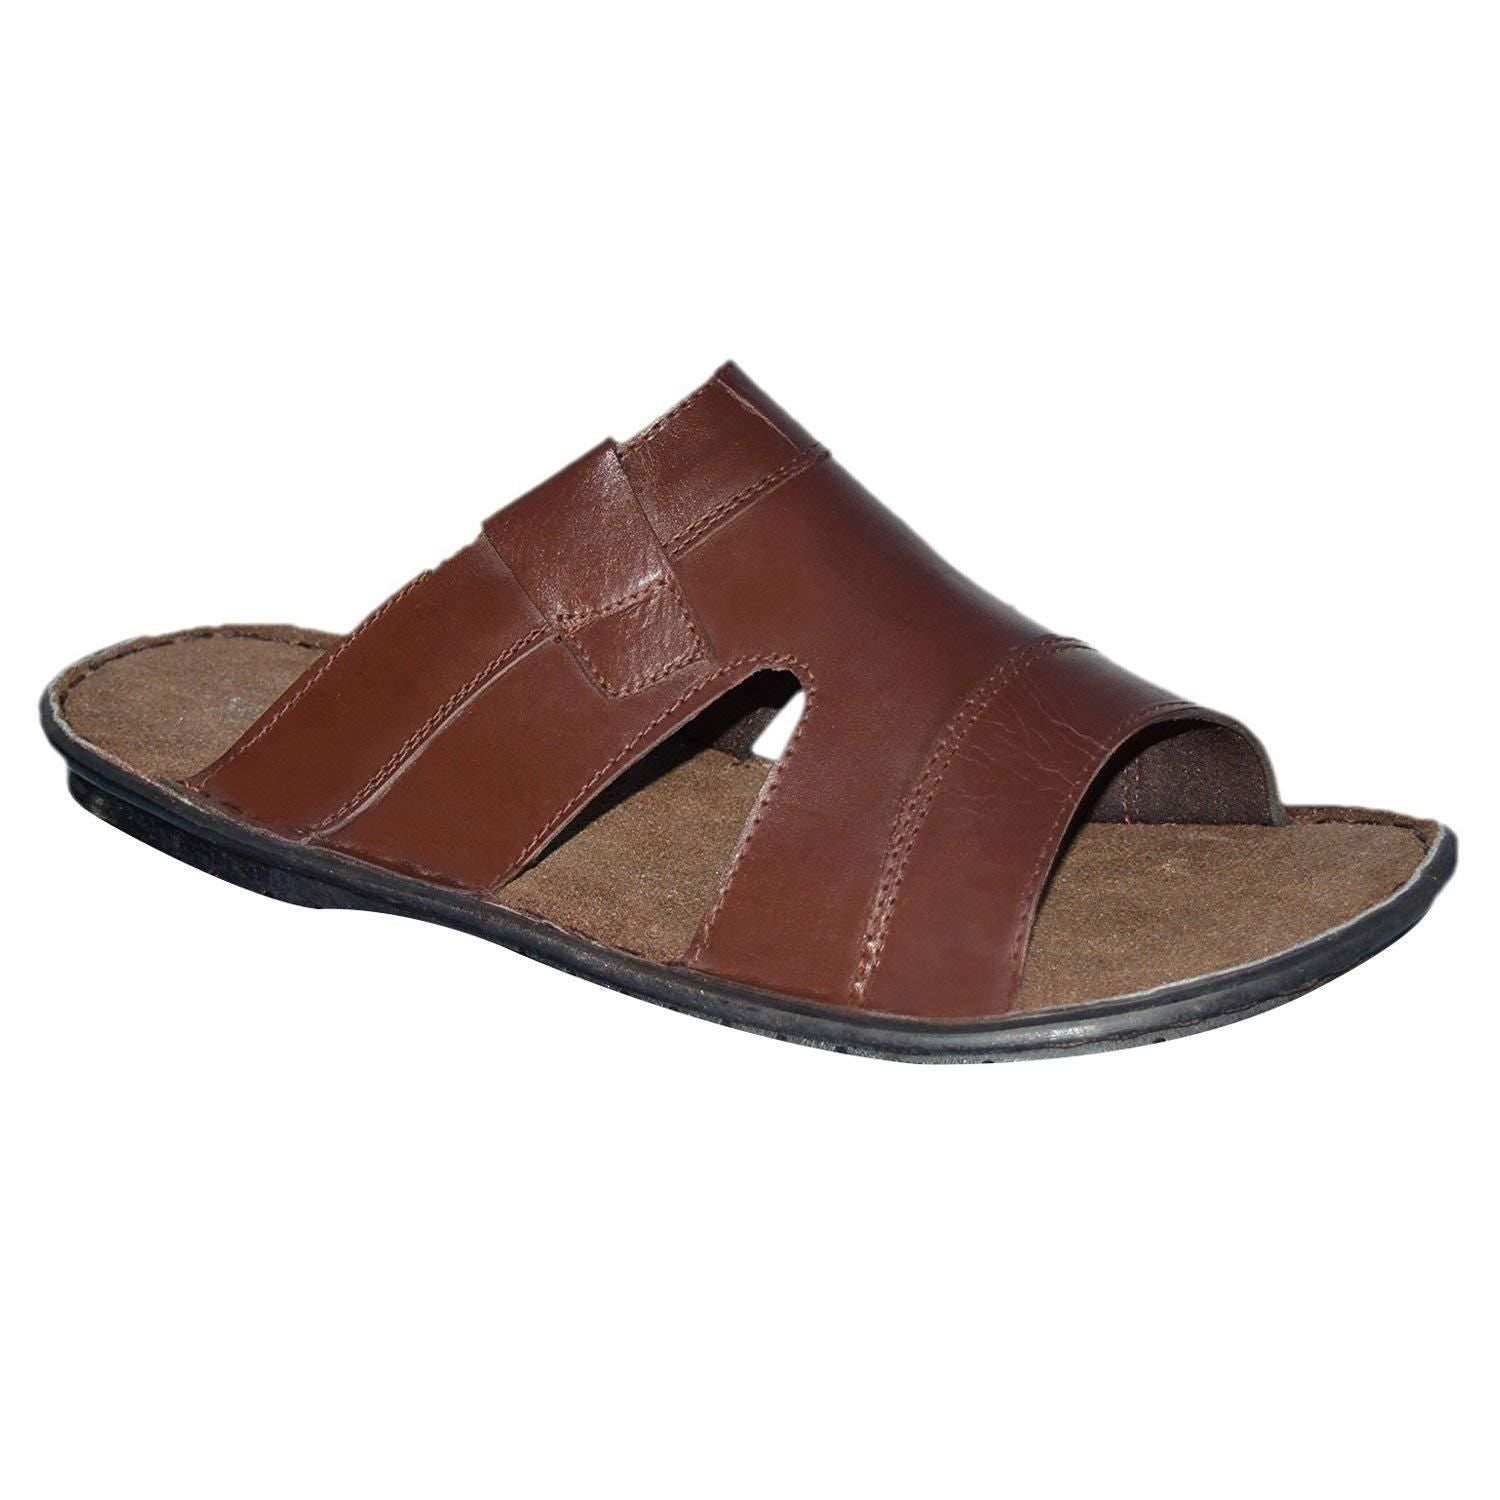 553814dee Mens Leather Comfort Mules Sandals Flip Flops Strappy